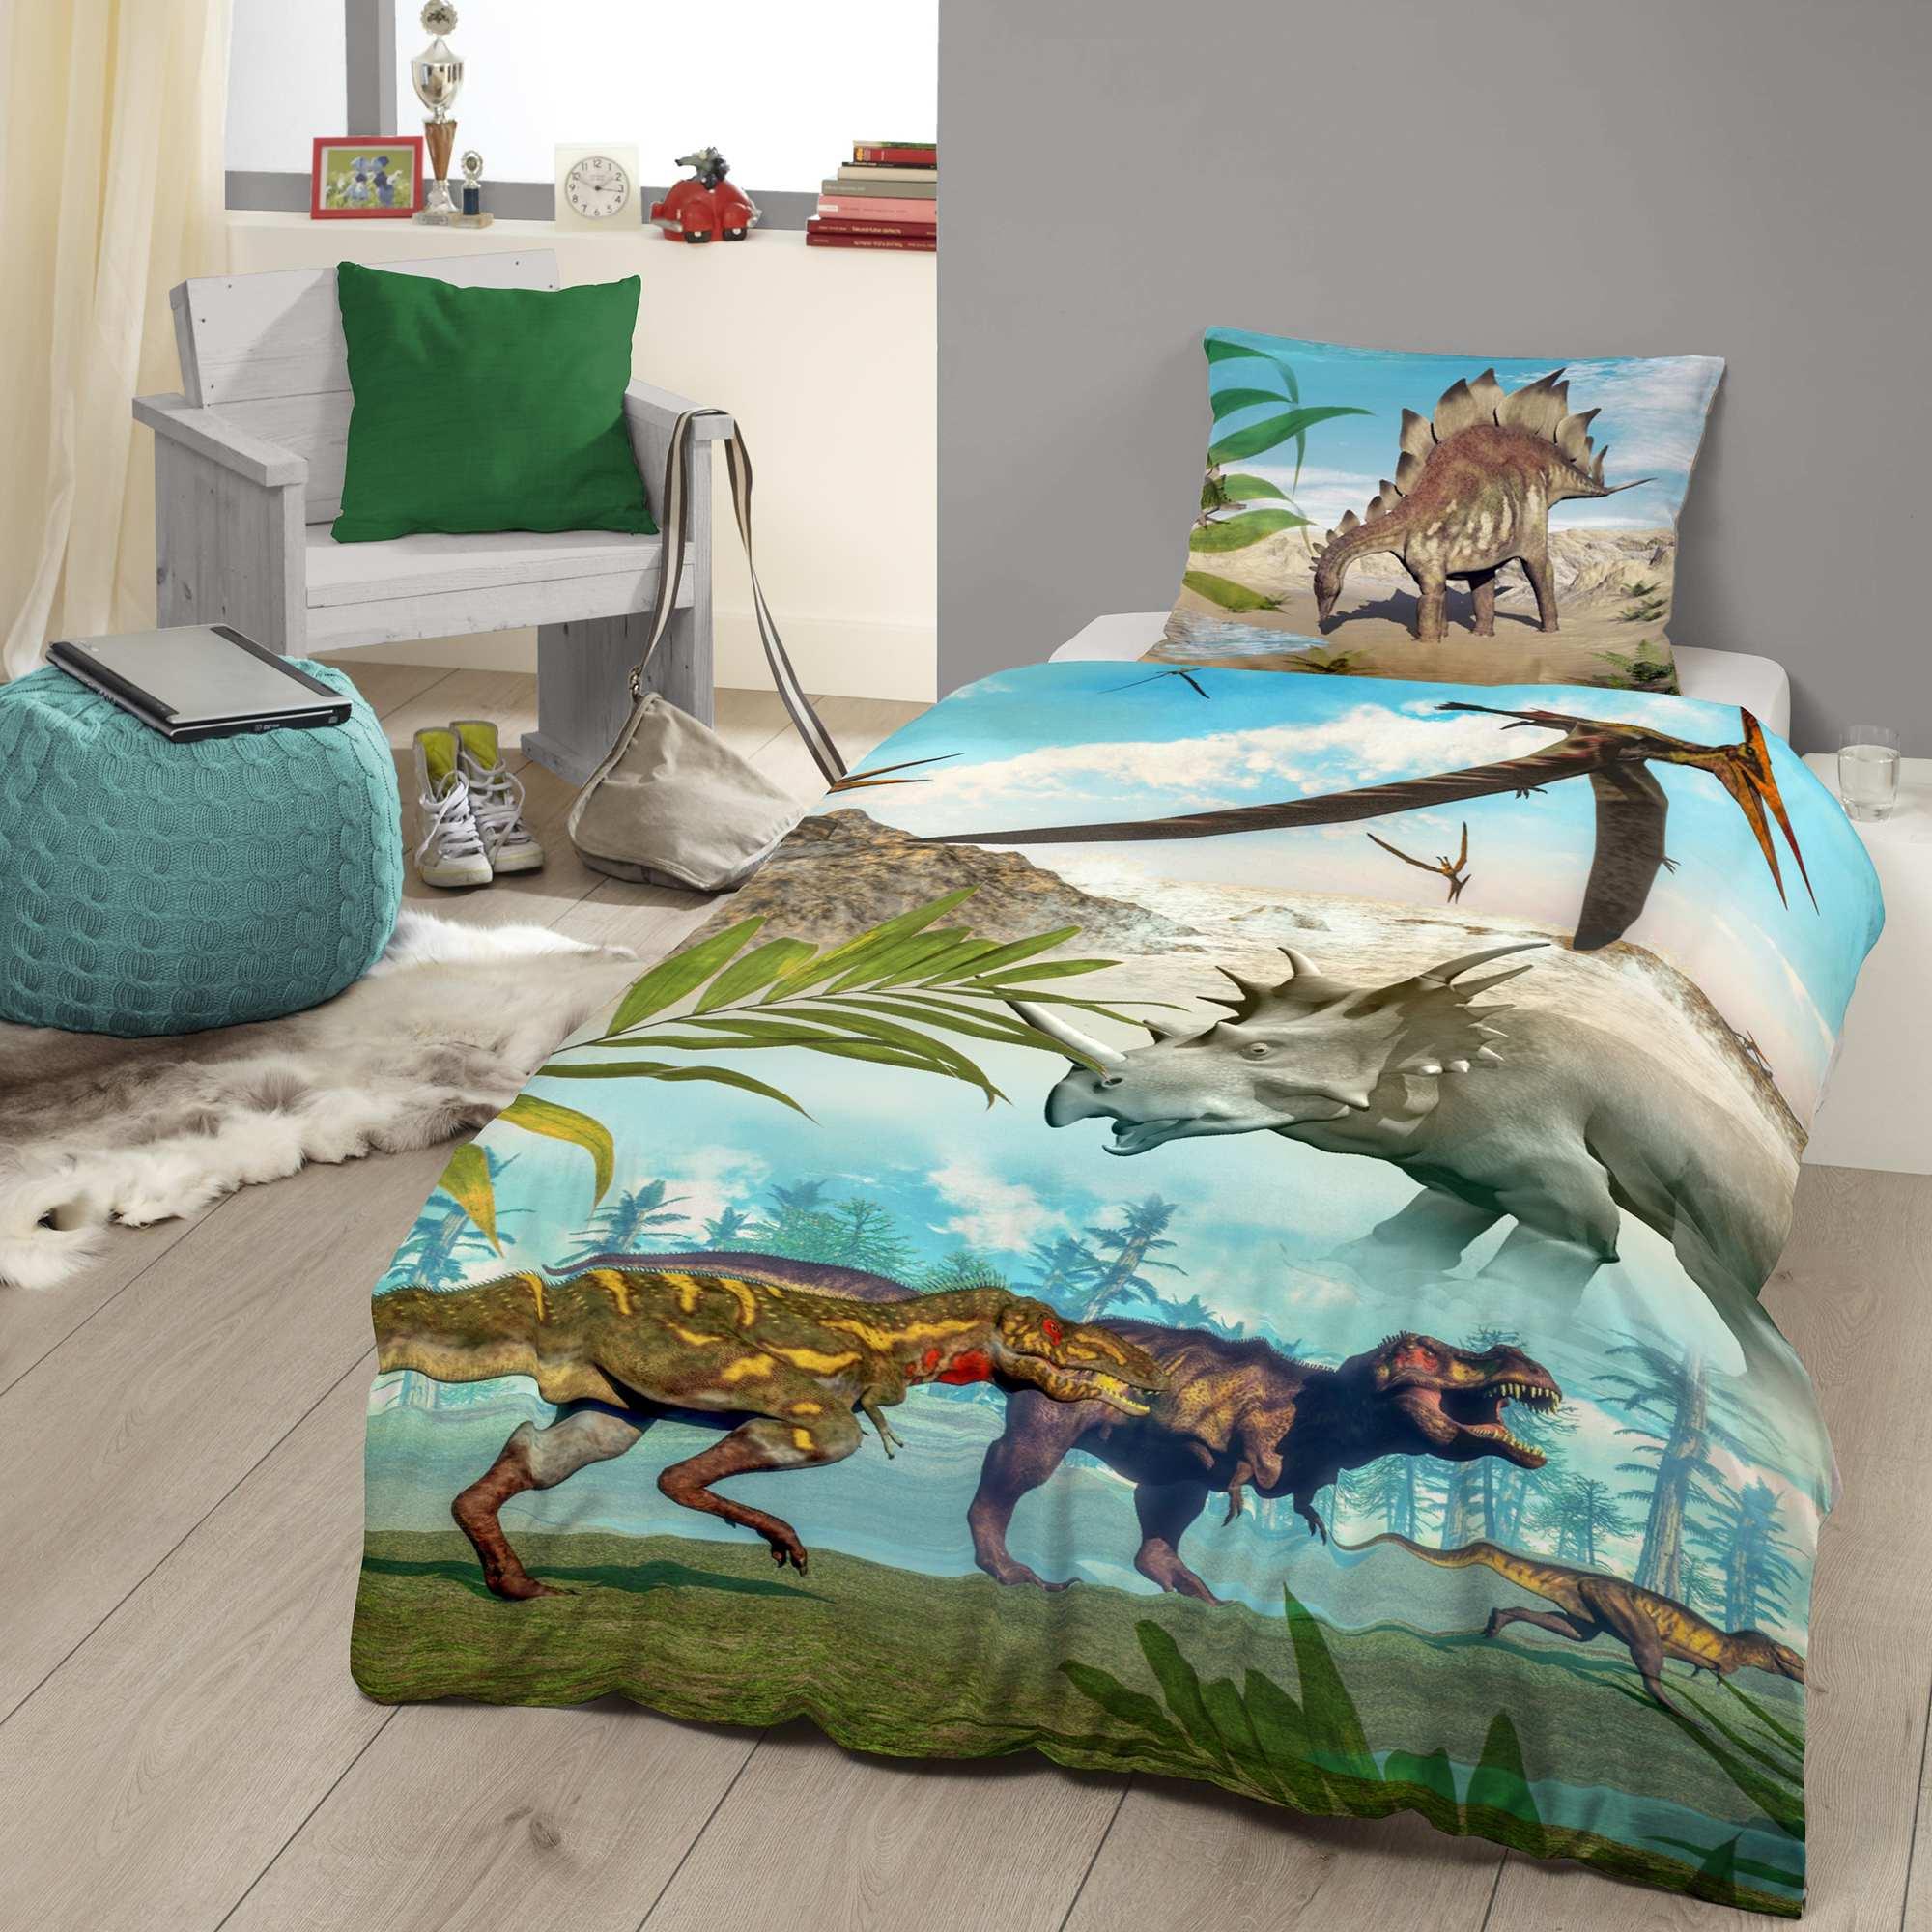 parure de lit imprim e 39 dinosaures 39 linge de lit kiabi. Black Bedroom Furniture Sets. Home Design Ideas